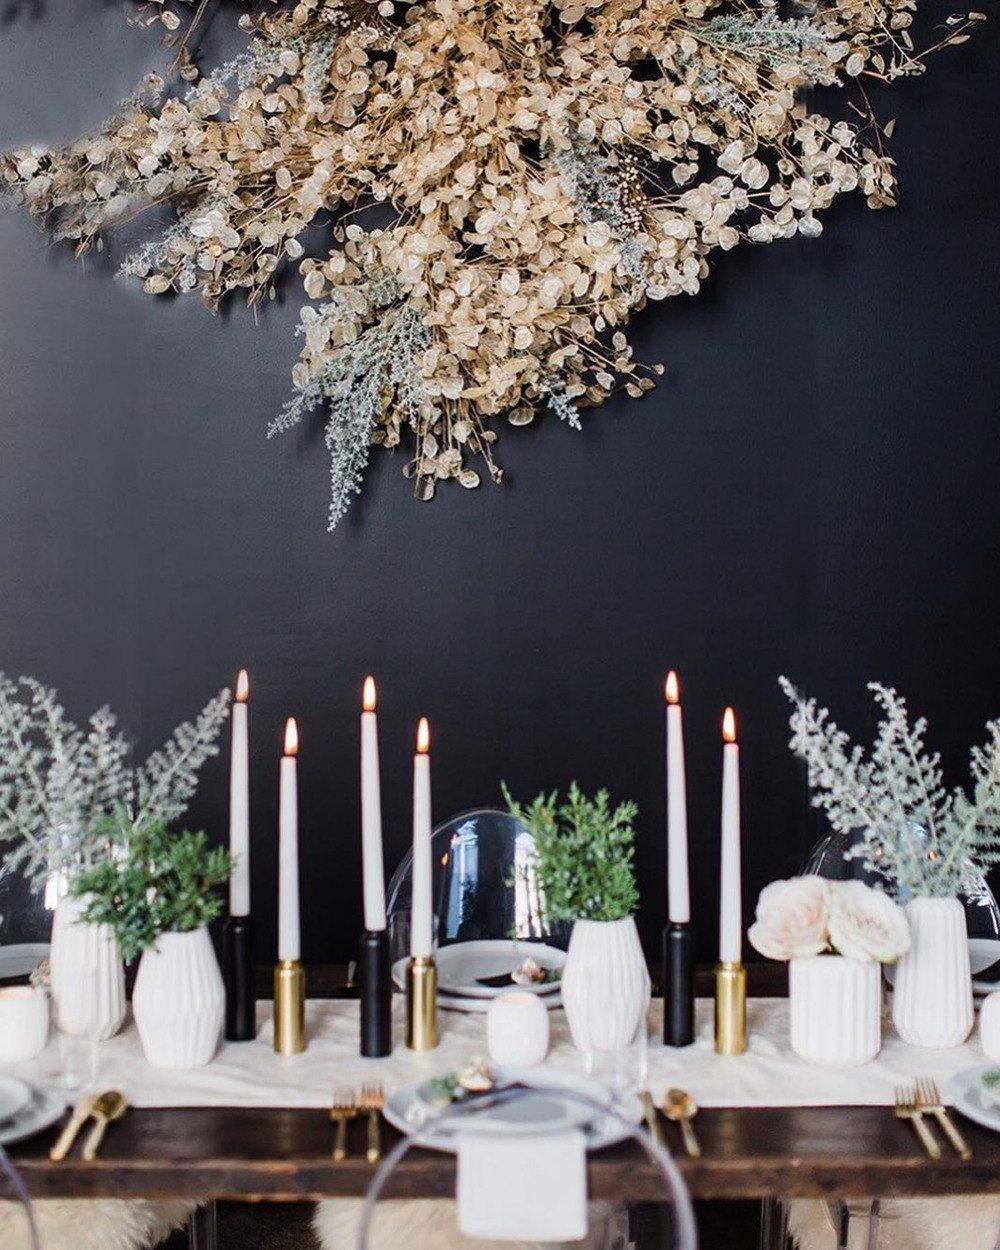 a black wall accented with an oversized lunaria decoration with pale miller, it looks very wintry like